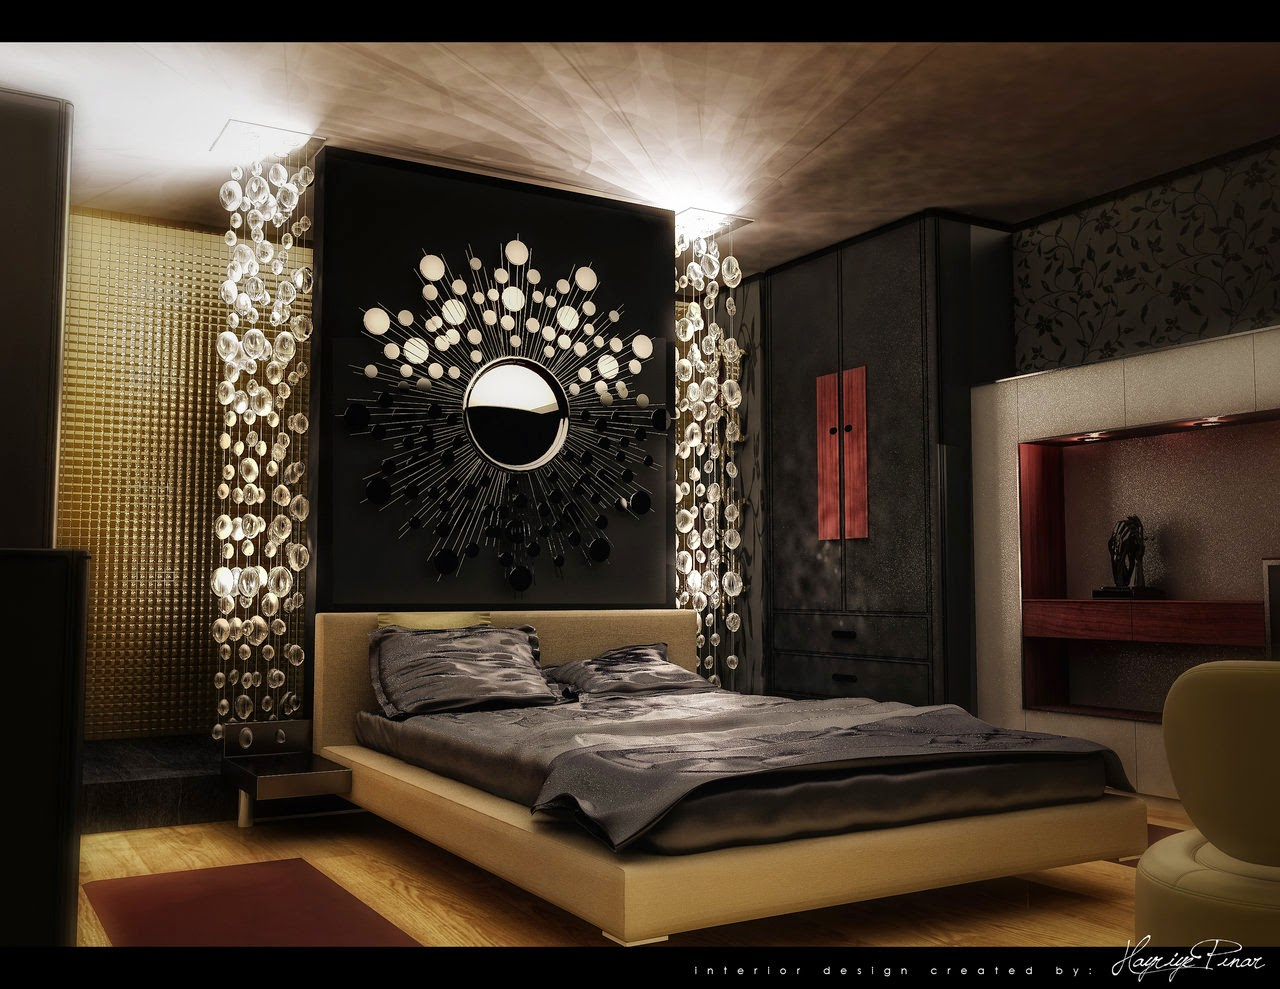 Glamorous bedroom decorating ideas | Kinjenk House Design